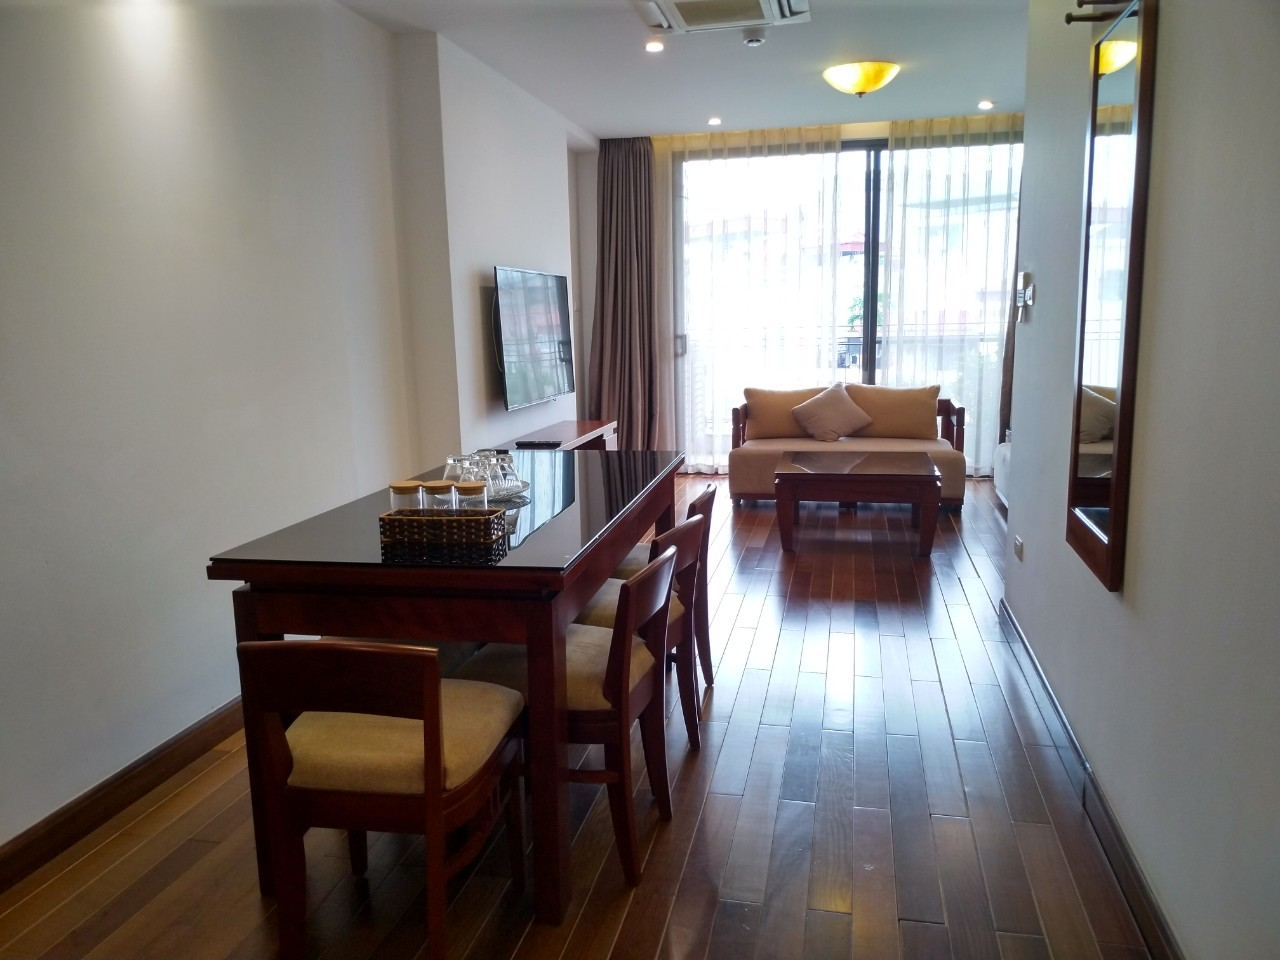 Bright and City view 2 bedroom apartment for rent in Watermark, Xuan Dieu street,Tay Ho district 3